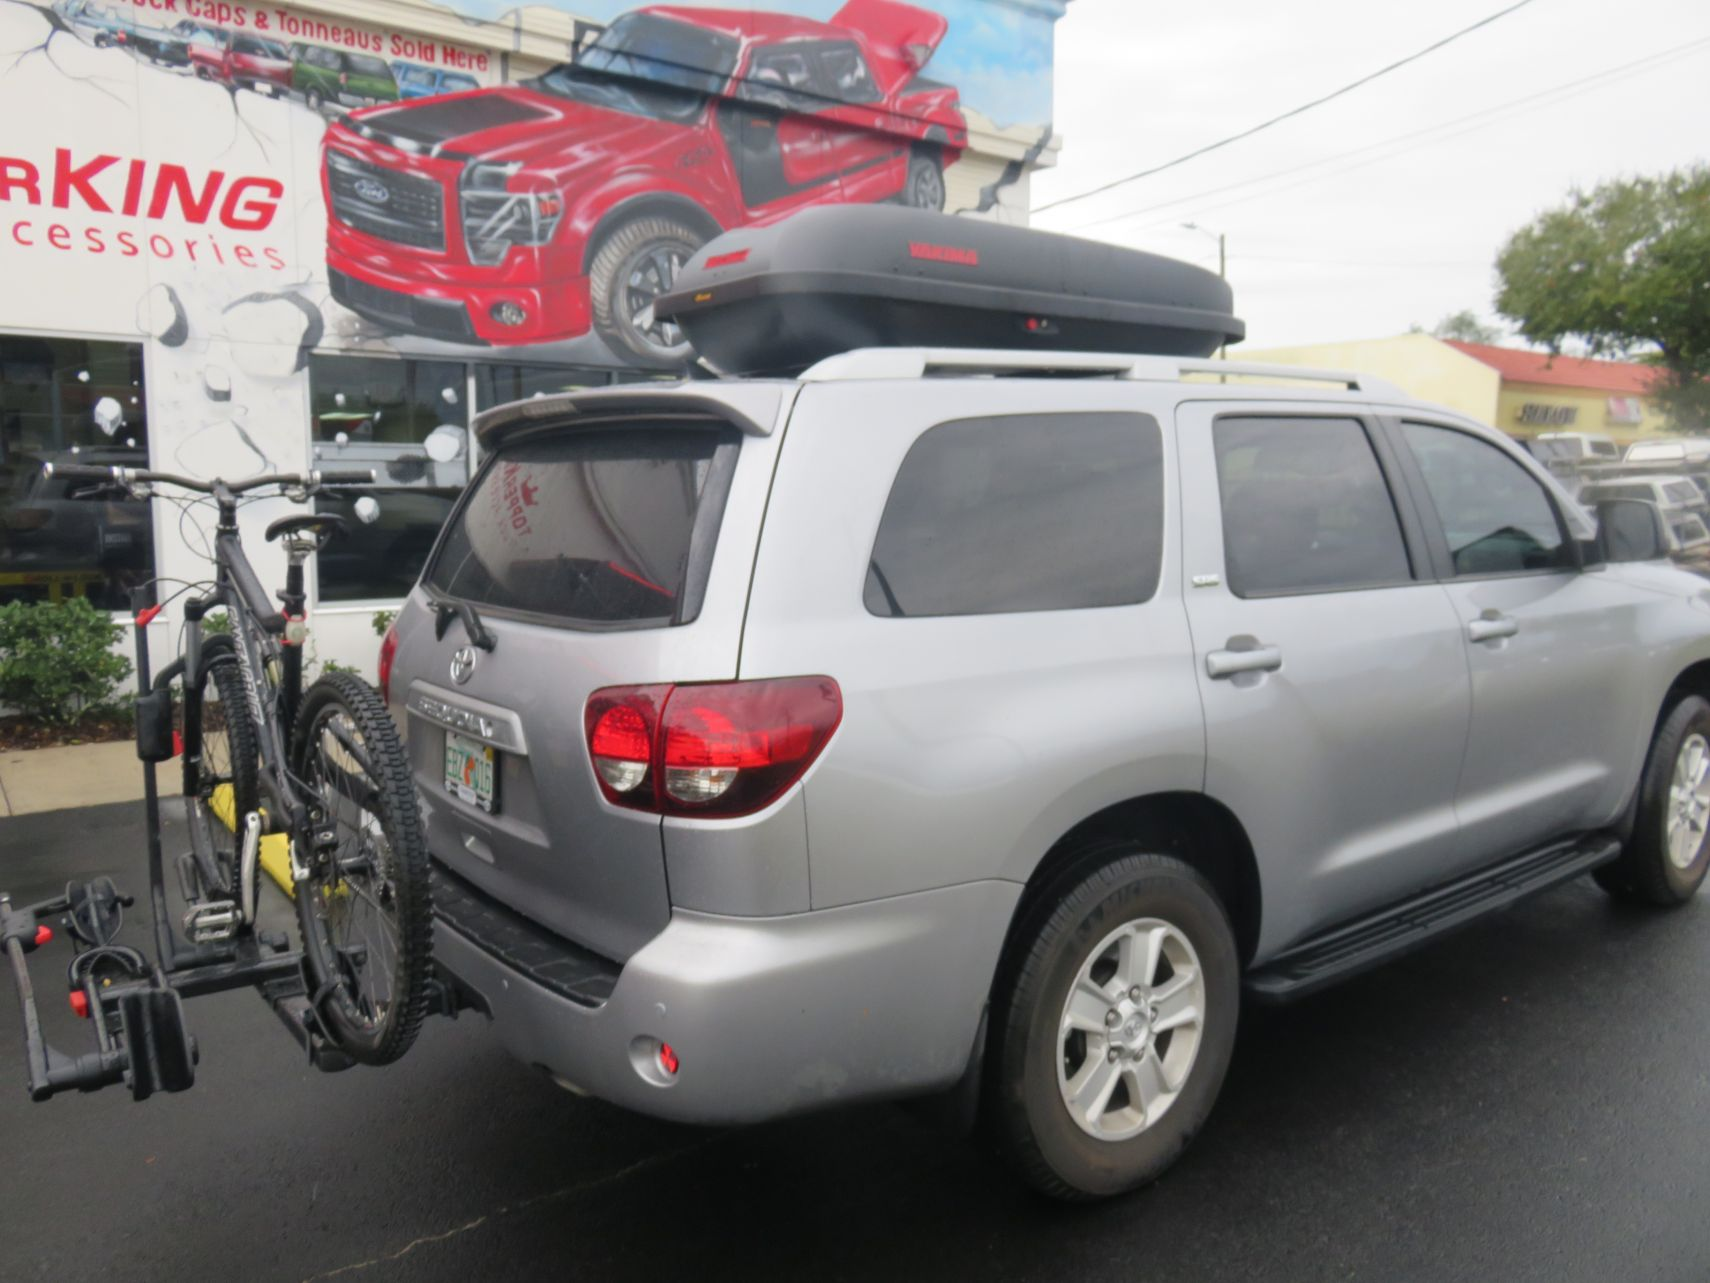 2018 Toyota Sequoia with Yakima Storage, Hitch, Bike Rack, Side Steps. Call TopperKING Brandon 813-689-2449 or Clearwater FL 727-530-9066.